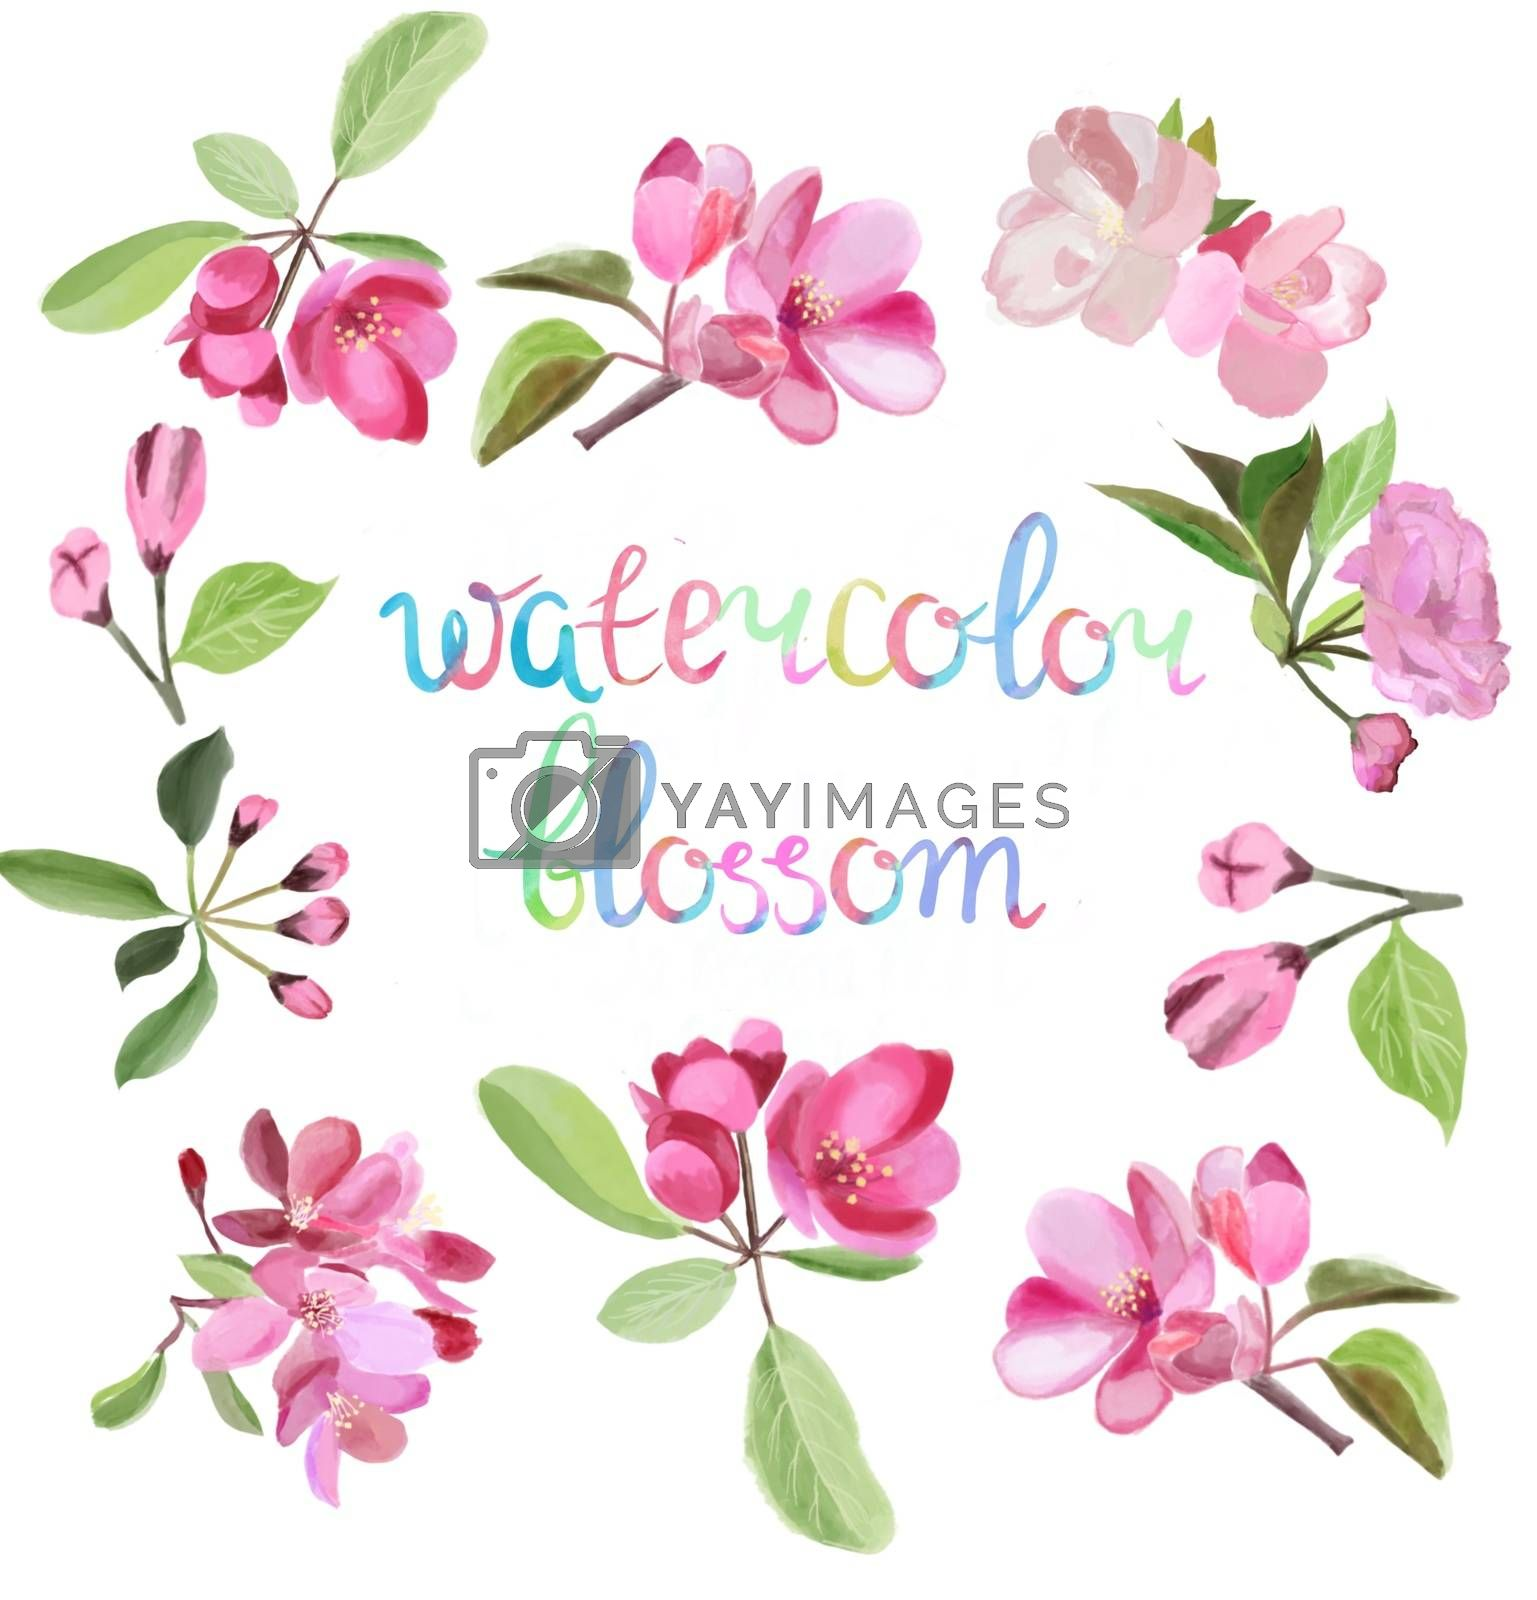 Watercolor beauty illustration with blossom pink cherry and apple tree flowers and inscription watercolor blossom.